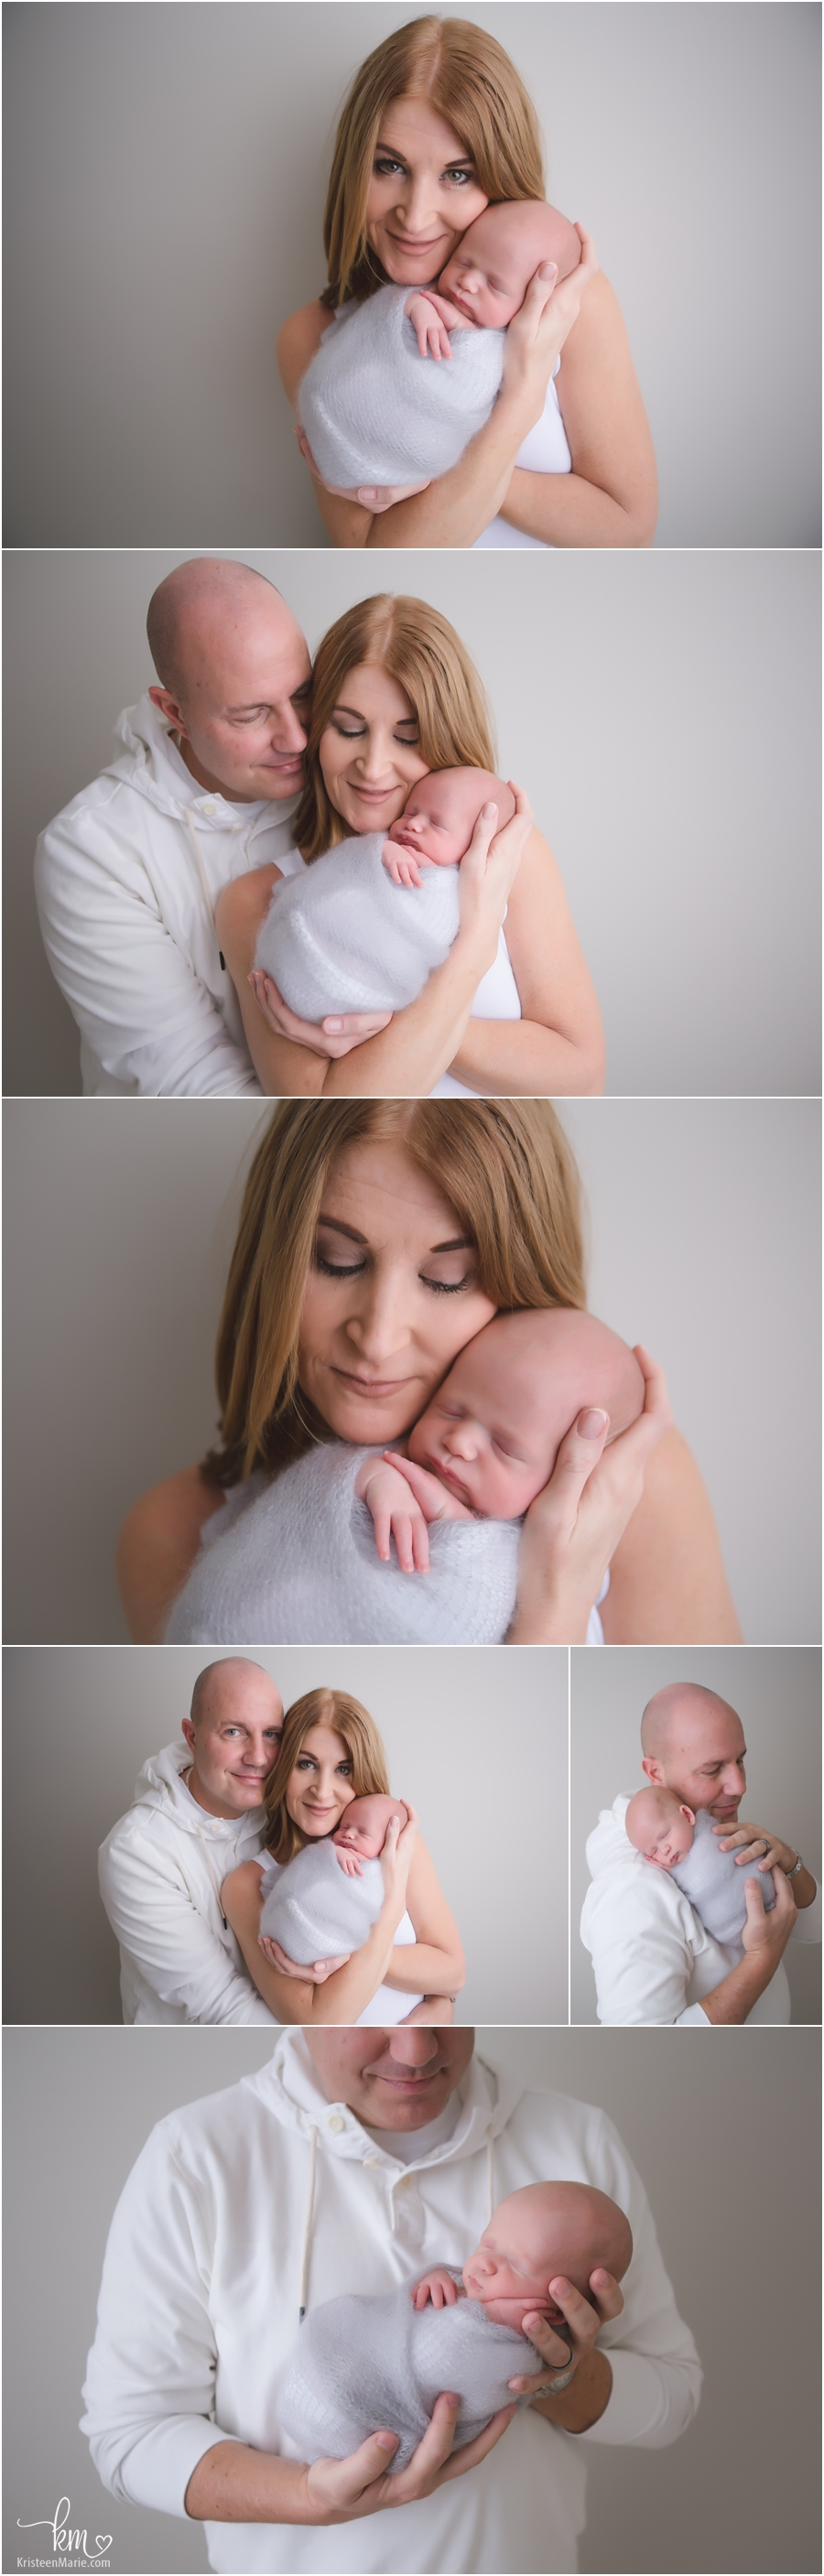 parents and newborn baby - studio poses for parents and baby - intimate